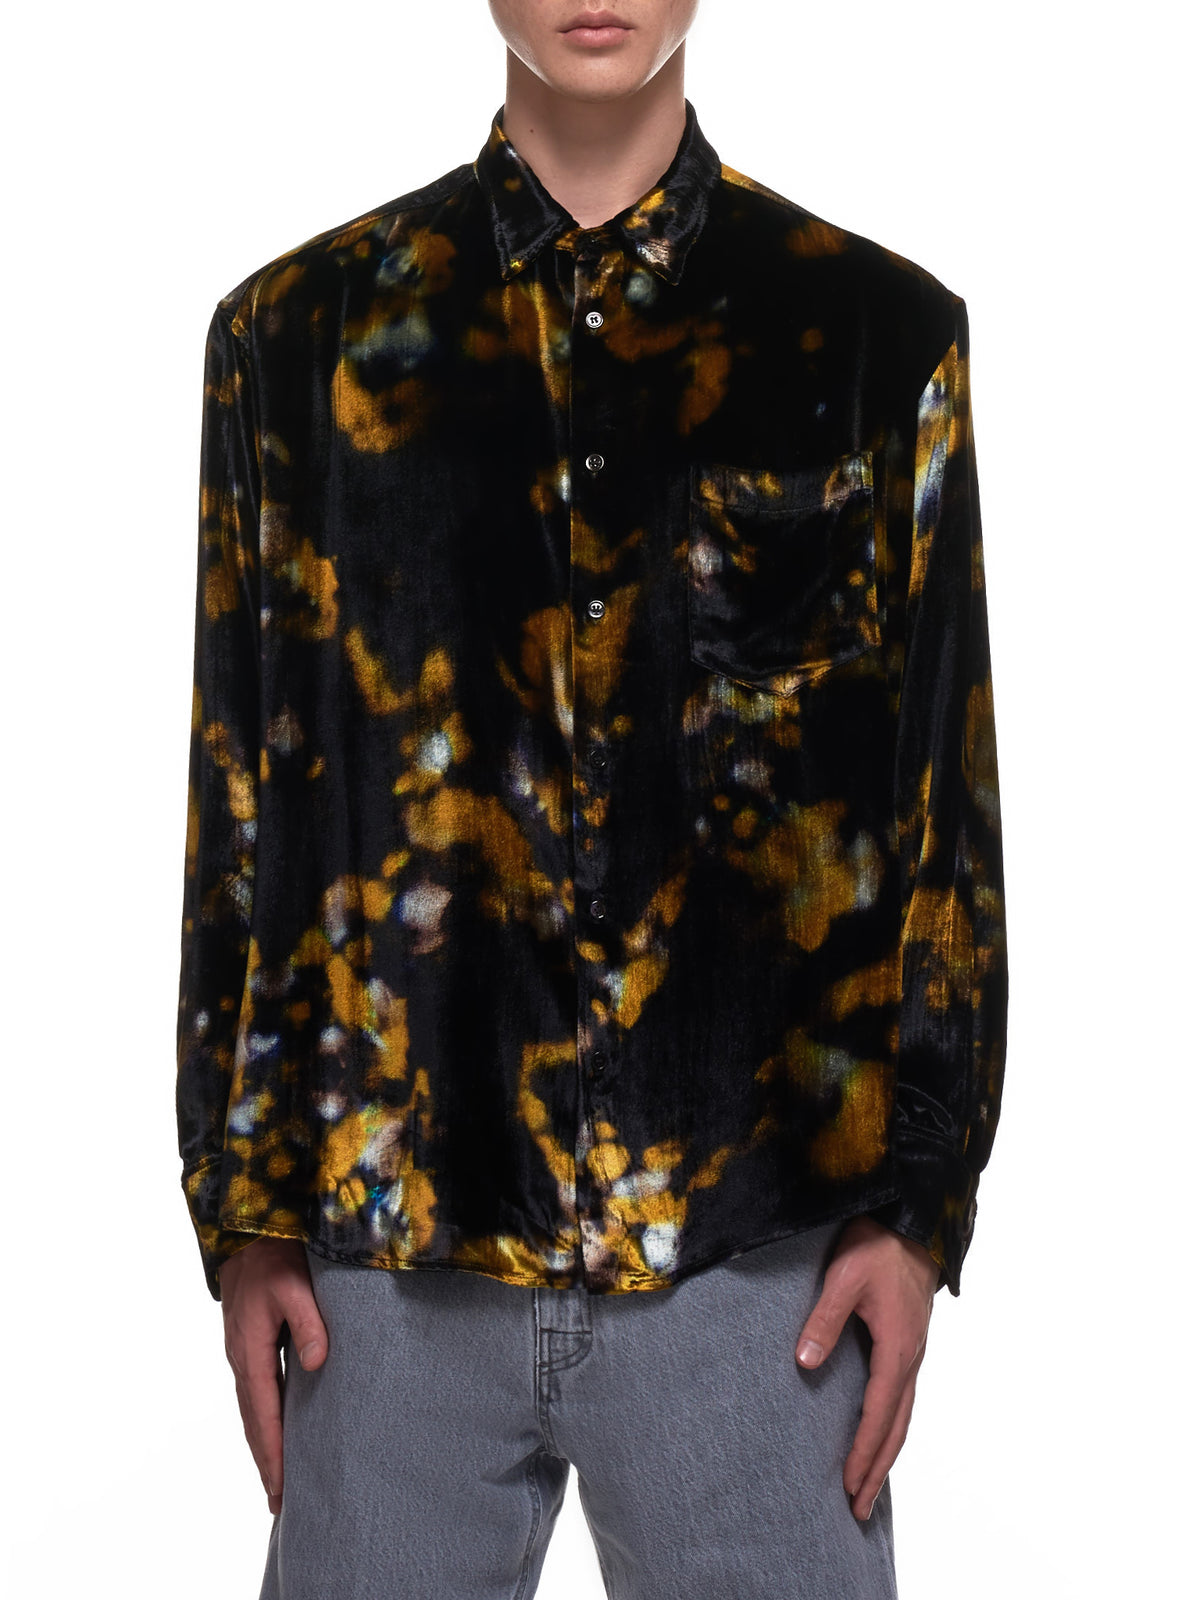 Distorted Pattern Wrinkled Cedric Shirt (CEDRIC-M17W647-BLACK-YELLOW-PR)